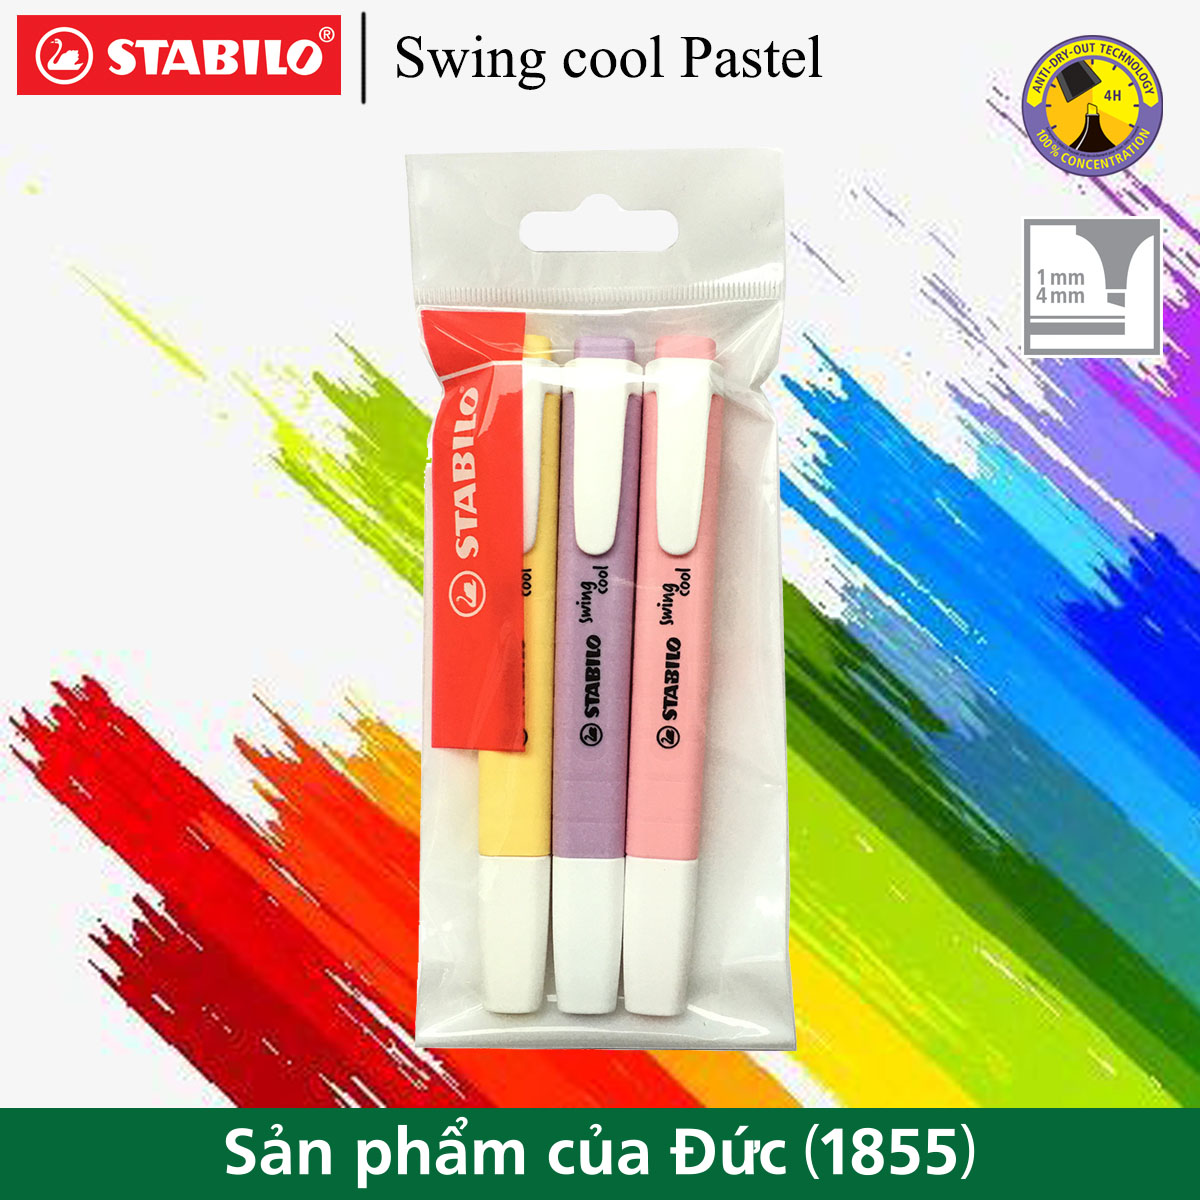 bo-3-but-da-quang-stabilo-swing-cool-pastel-vang-hong-tim-hlp275-c459